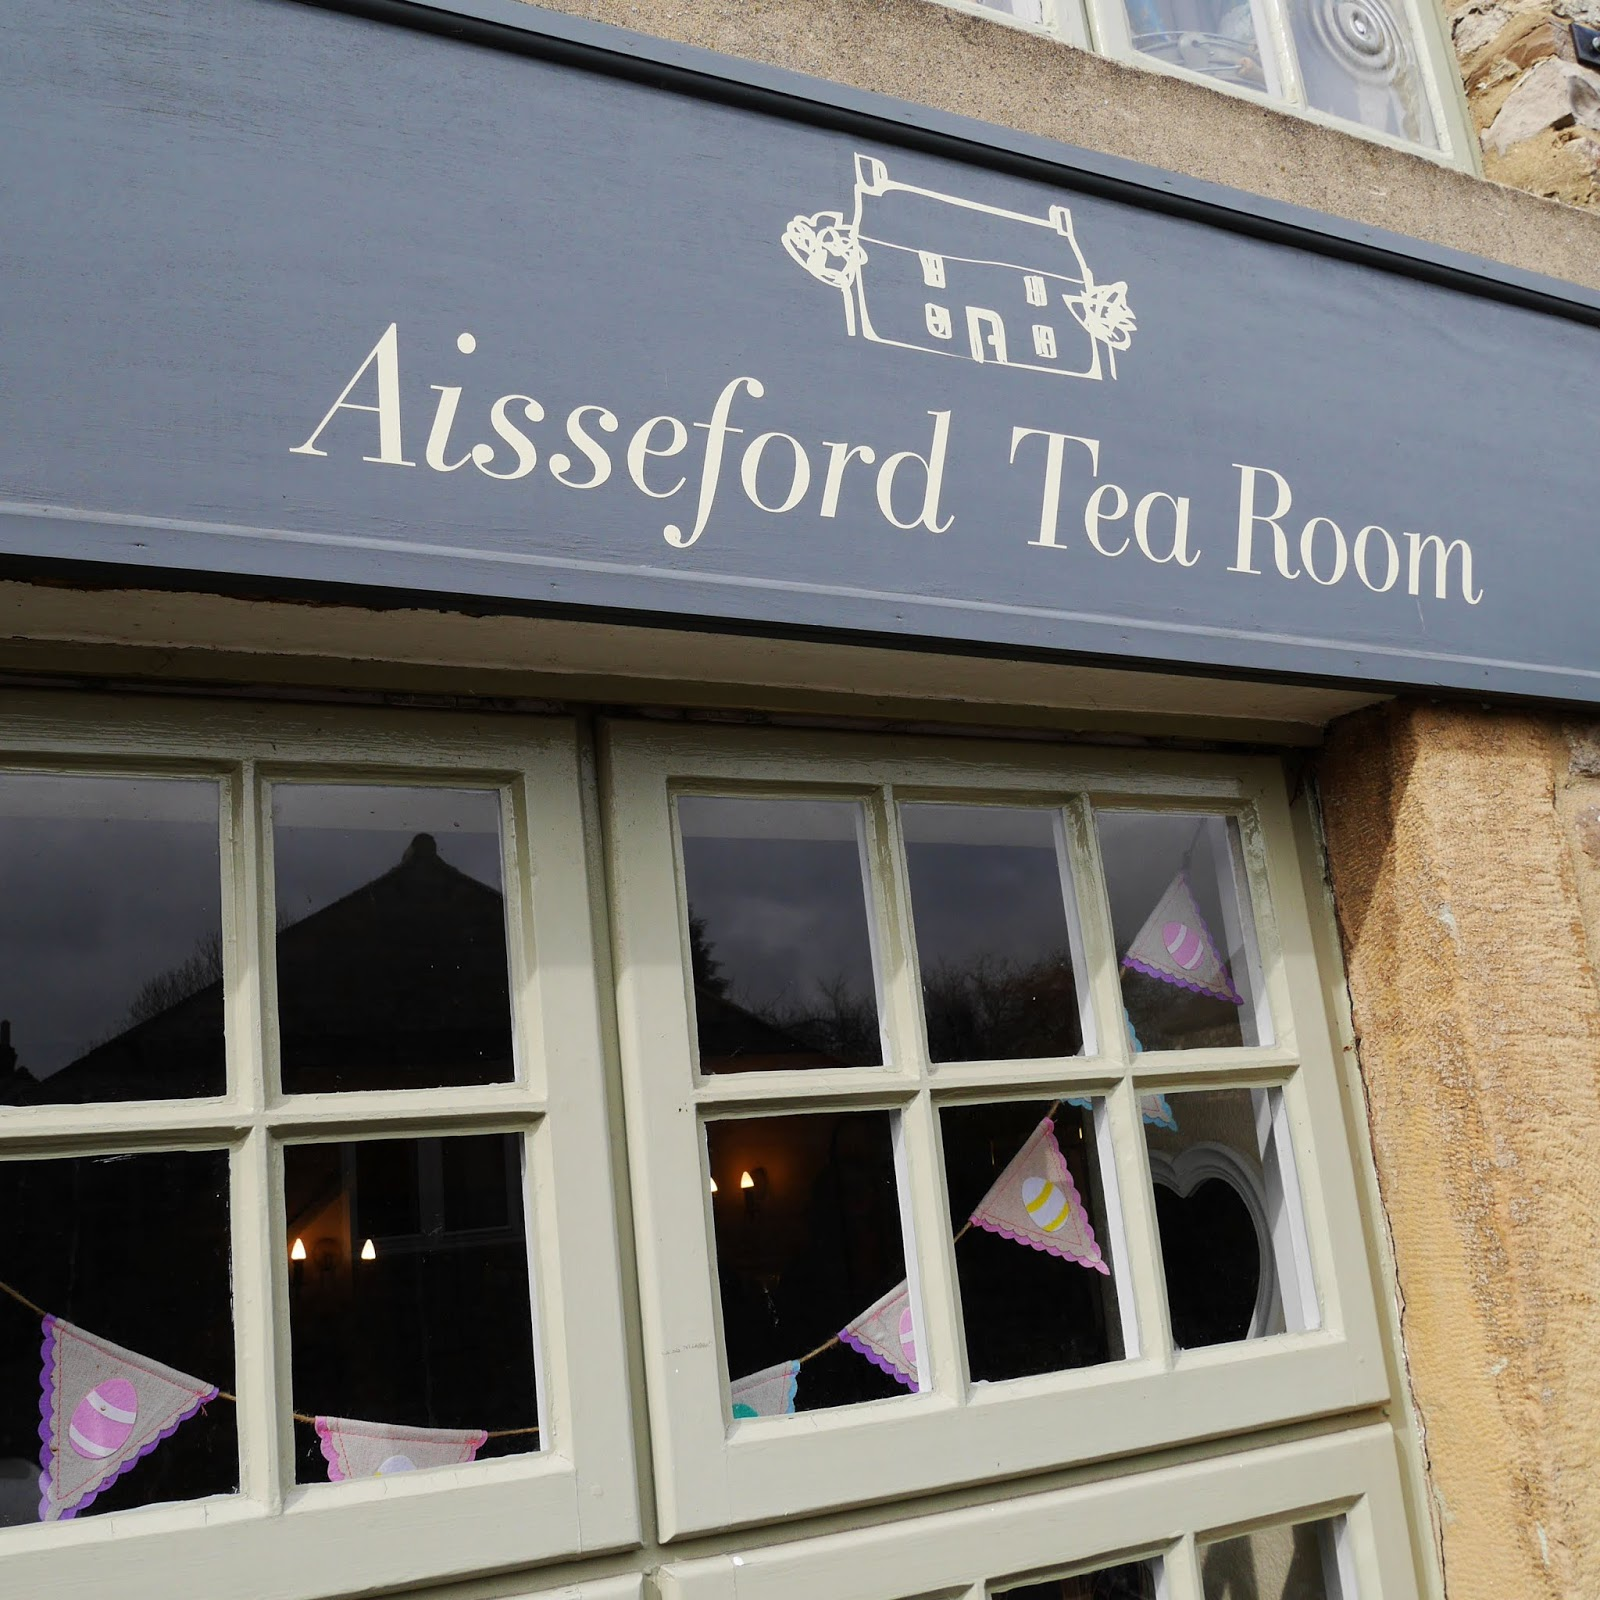 Aisseford Tea Room, Ashford-in-the-water (Peak District National Park)